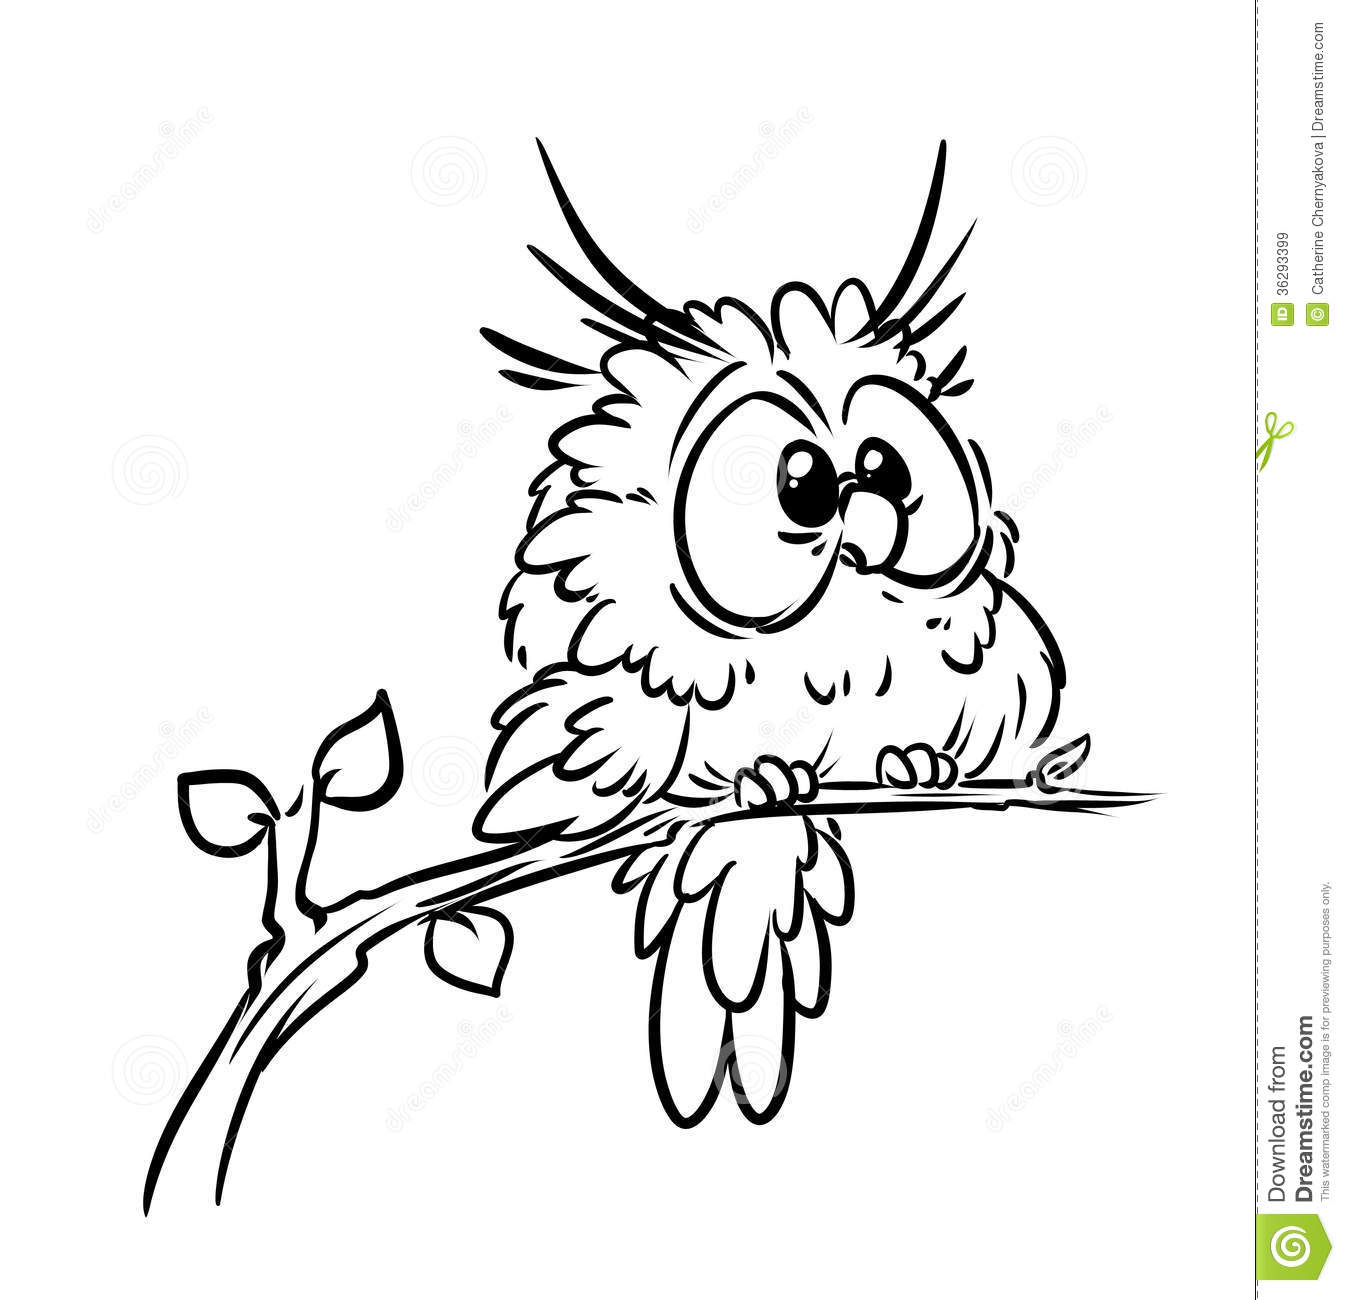 Bird Owl Coloring Pages Royalty Free Stock Images